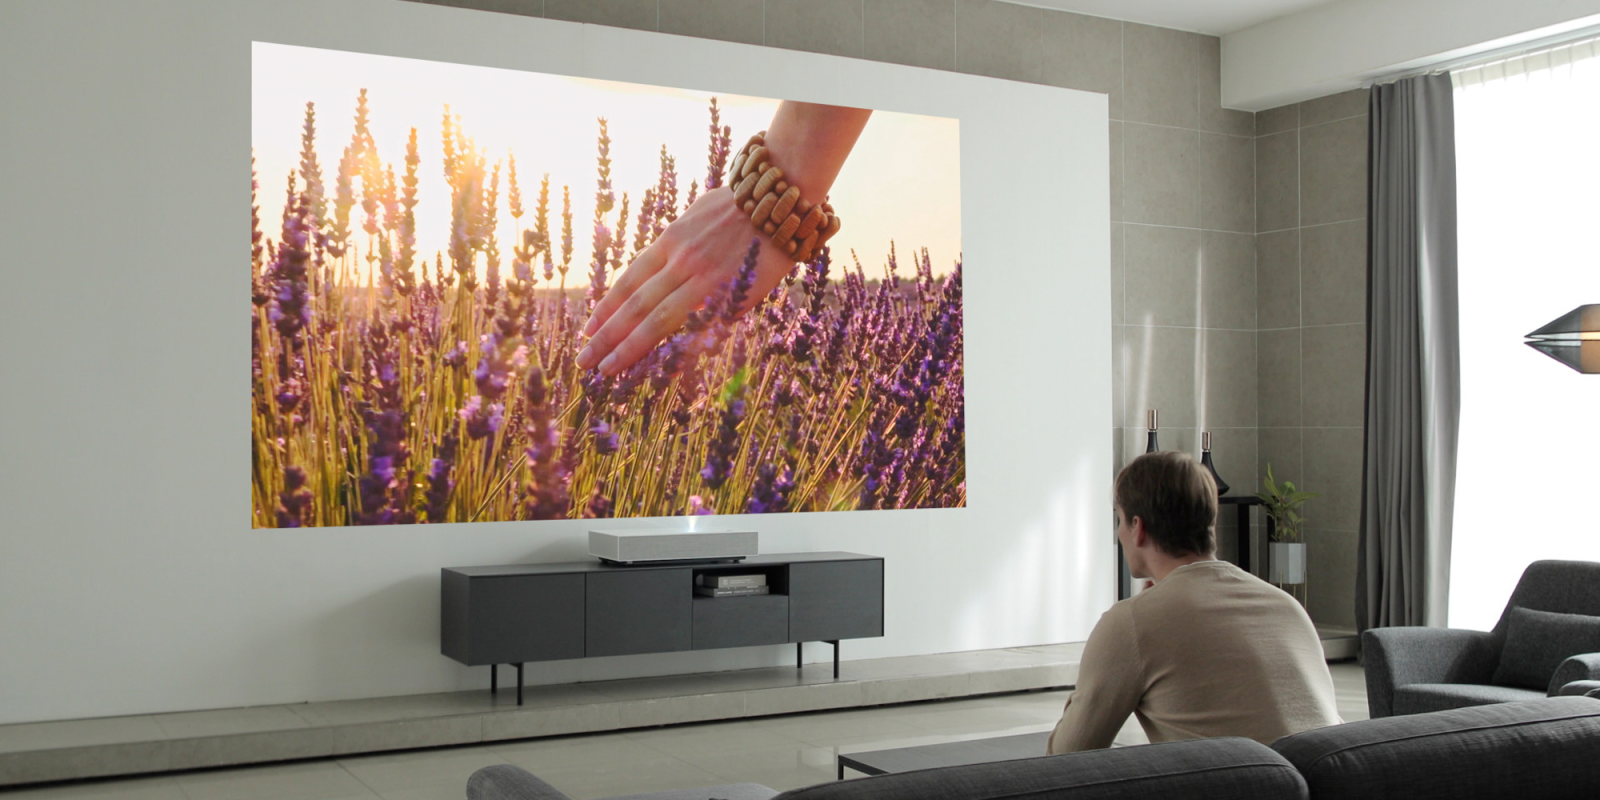 LG Announces Its Second Generation CineBeam Projector Now W Short Throw Technology